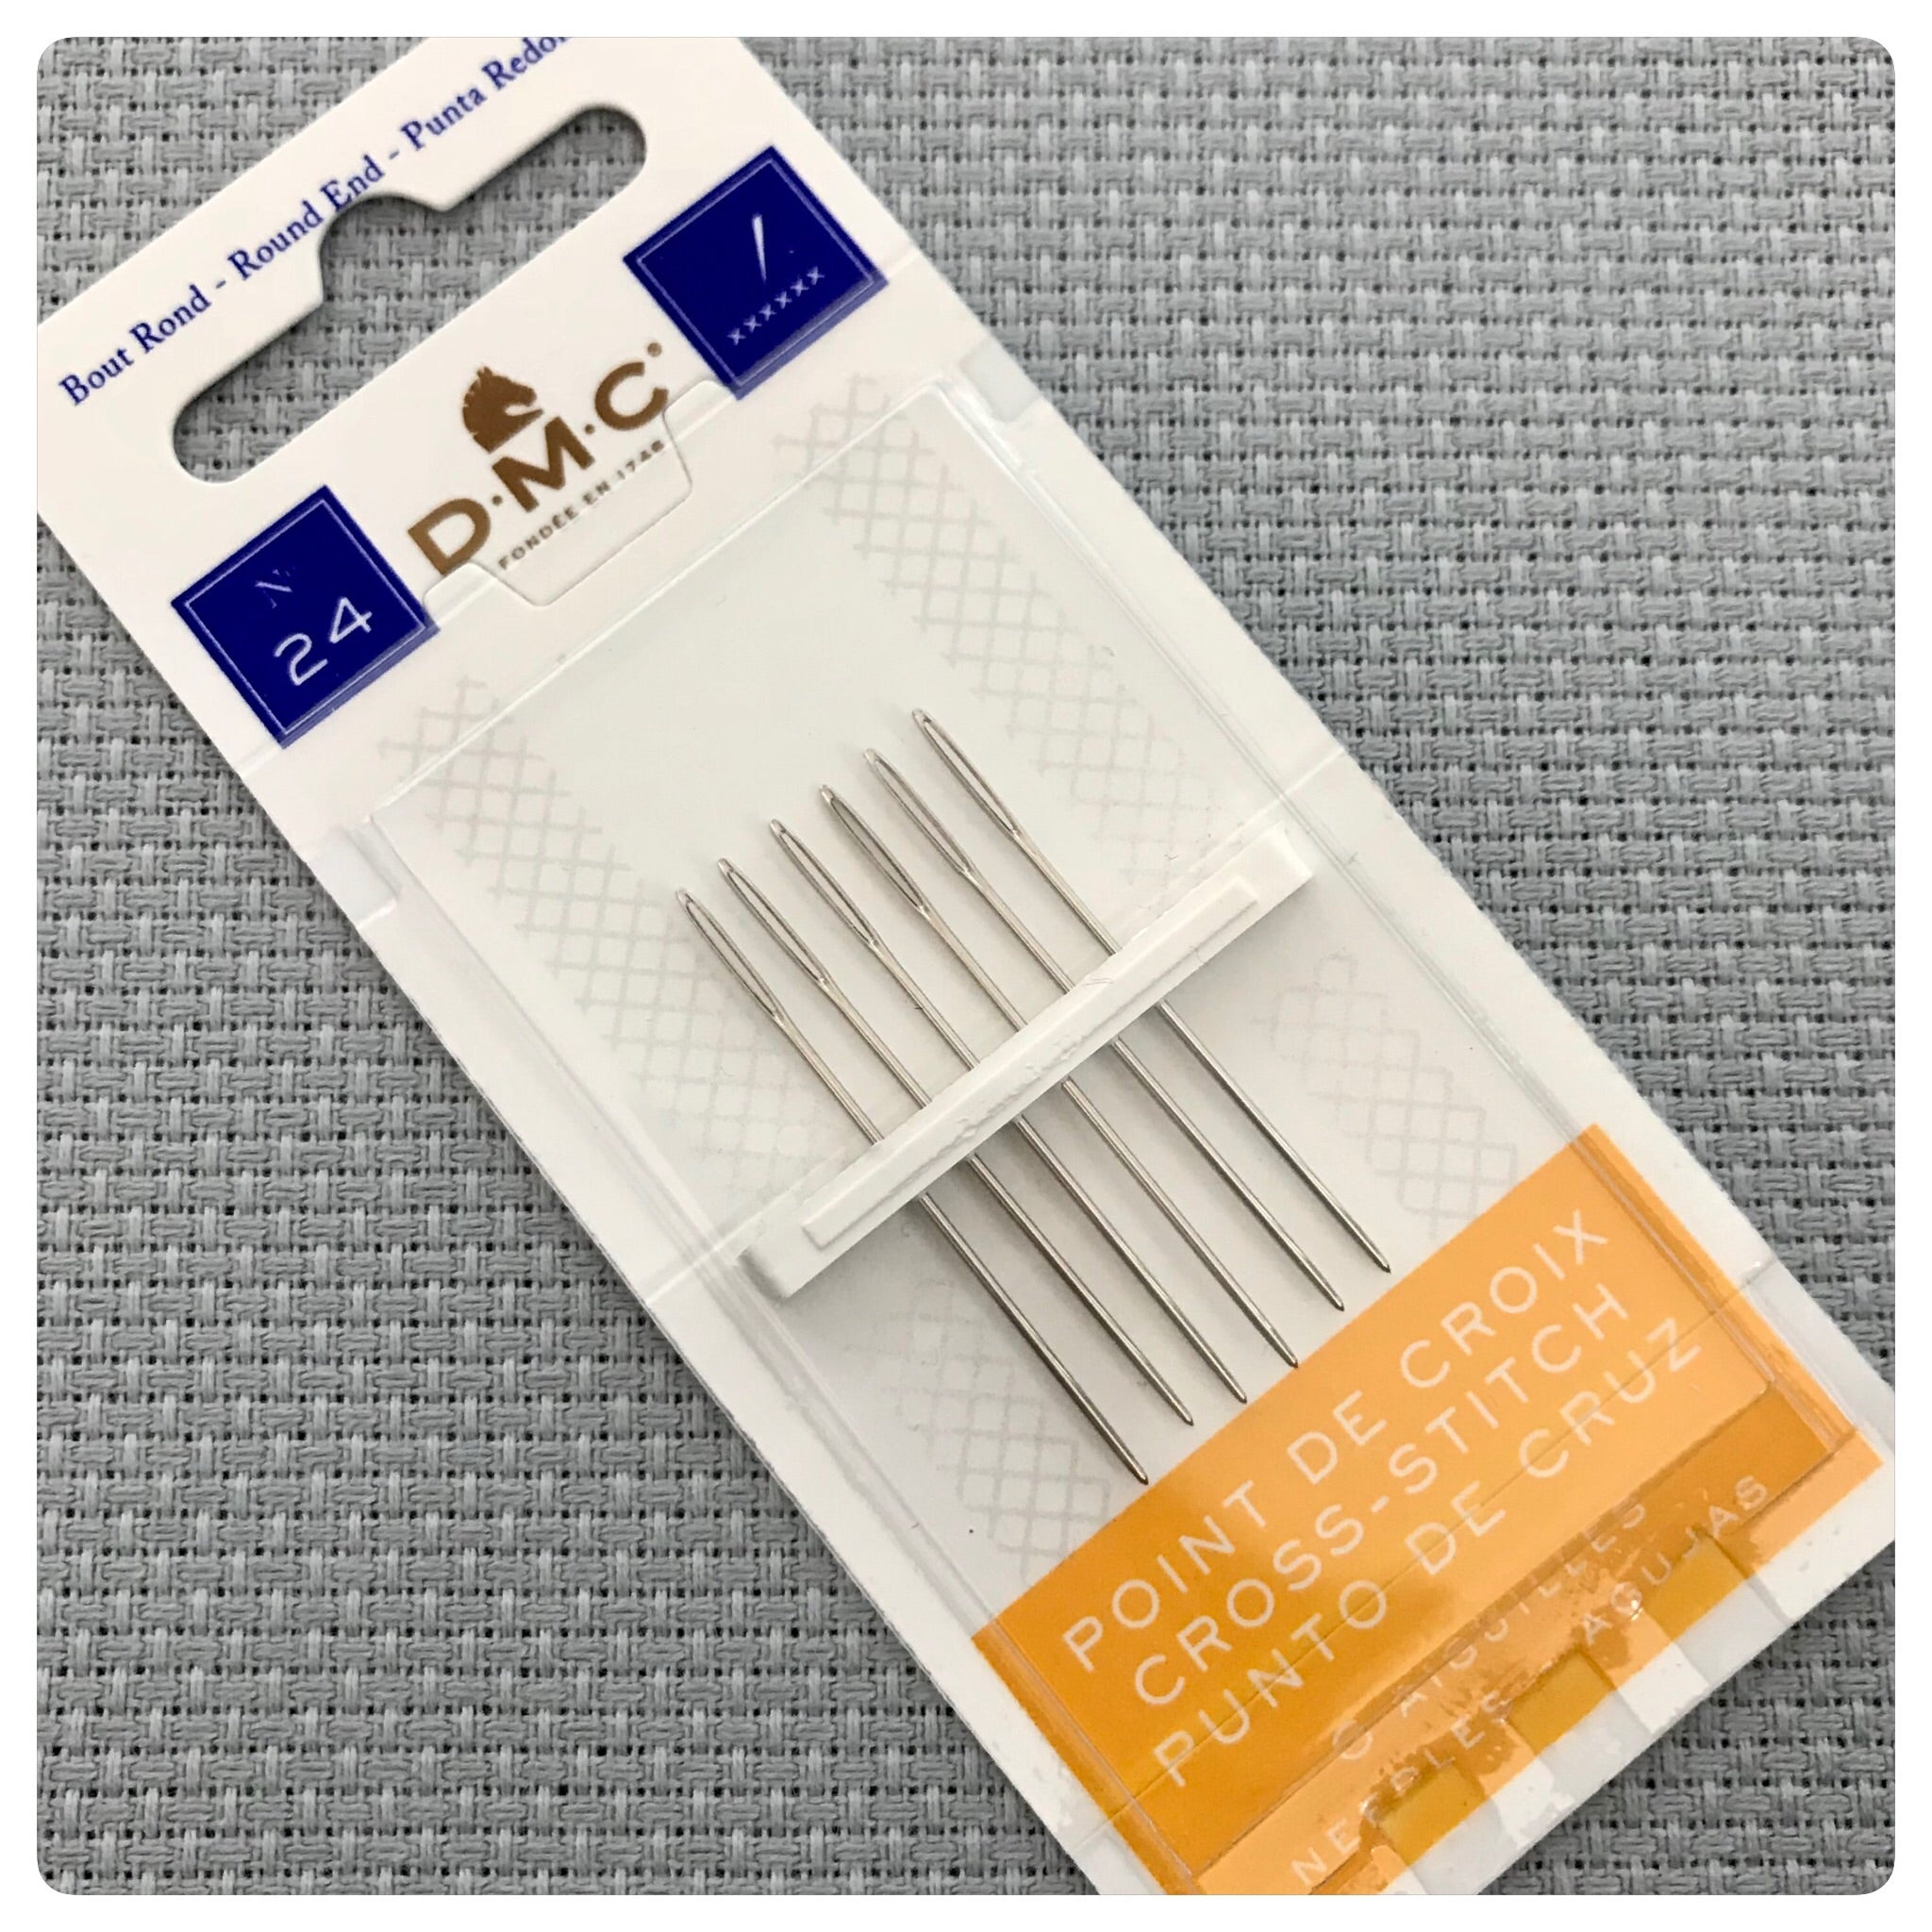 DMC Size 24 Cross Stitch Needles